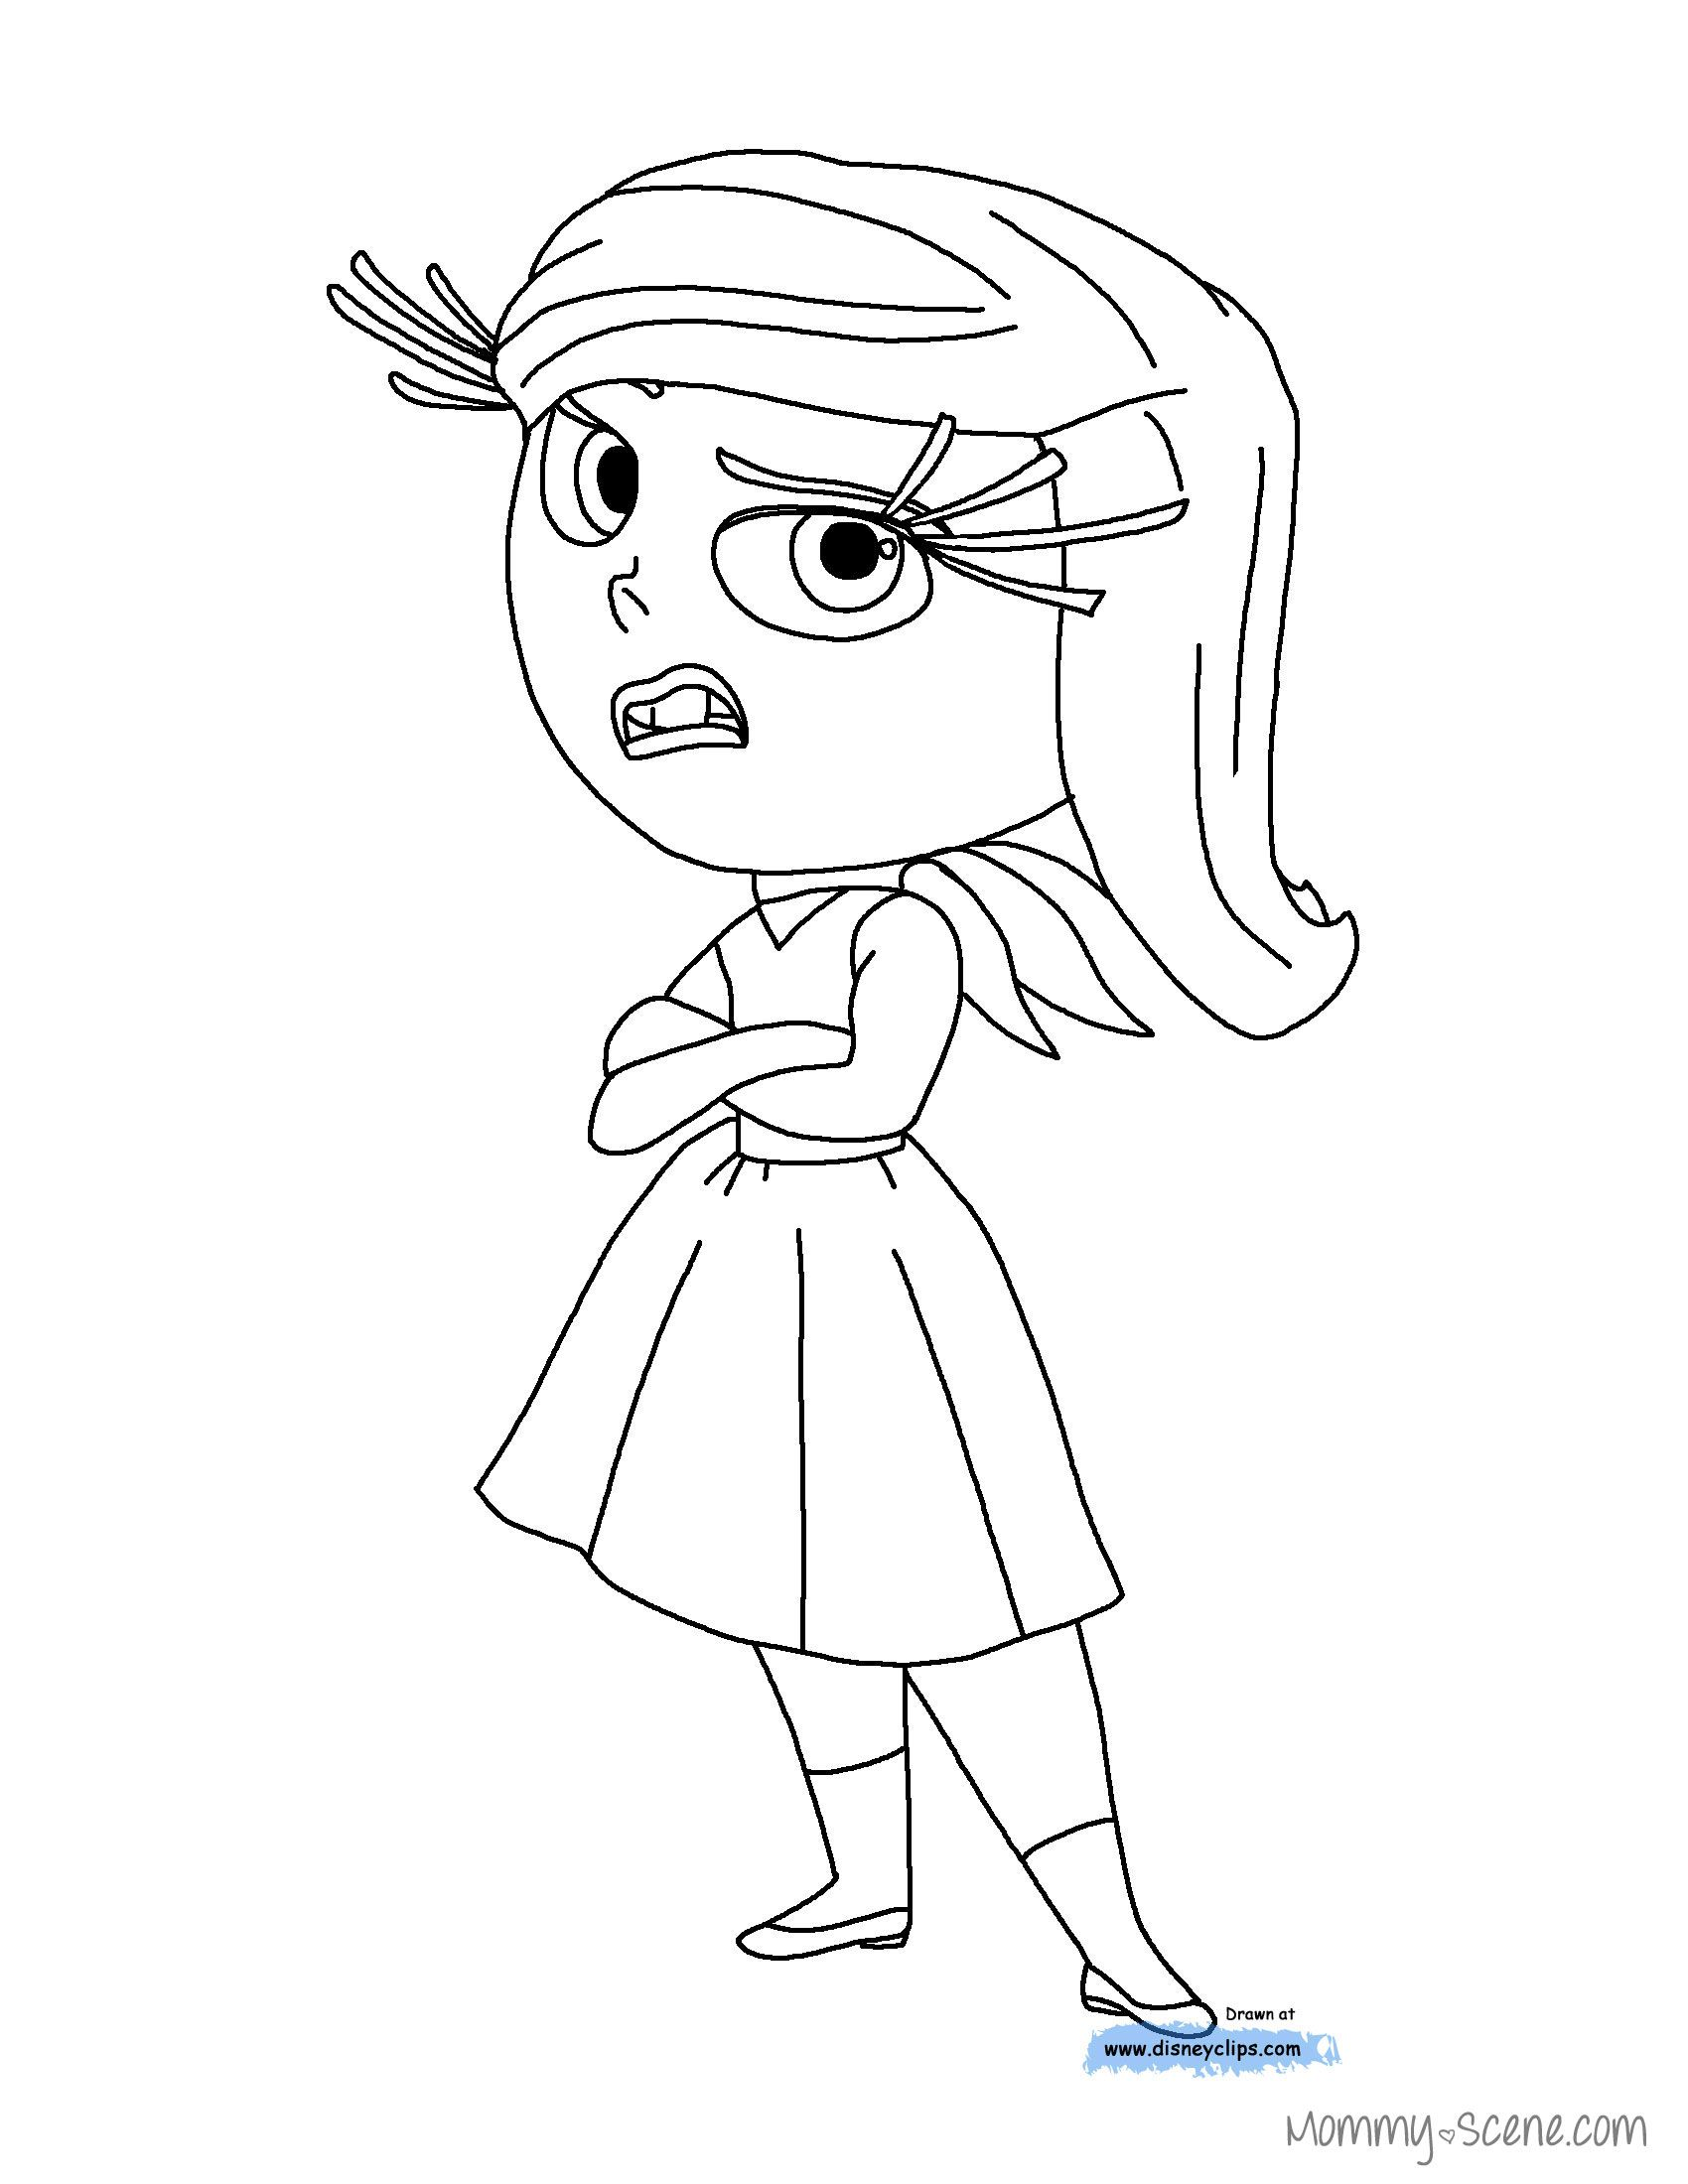 Disneys Inside Out Coloring Pages